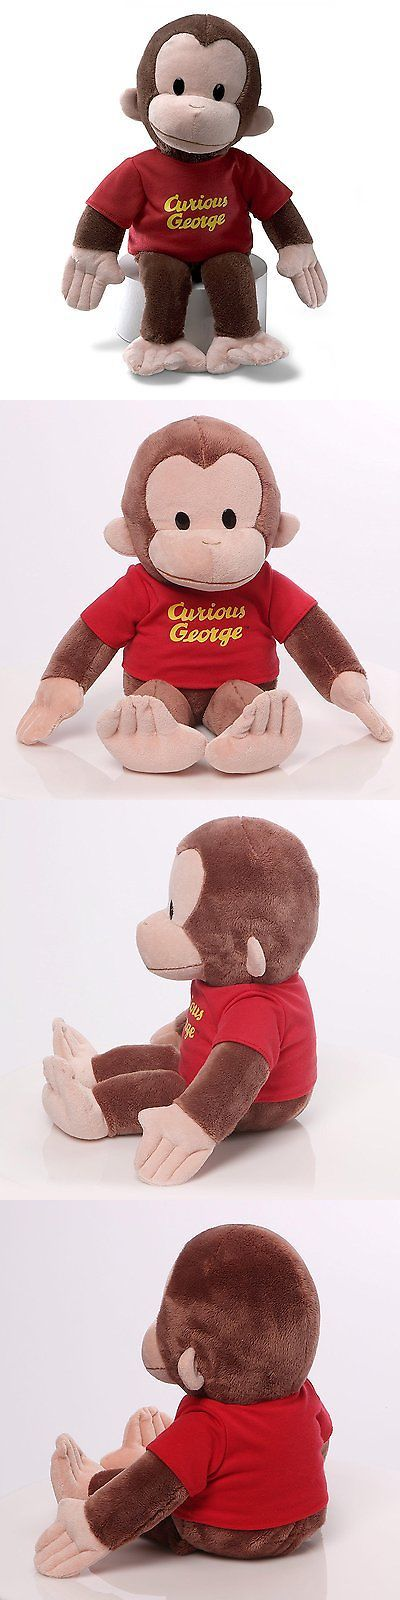 Curious George 19215: Gund Curious George Stuffed Animal, 16 Inches -> BUY IT NOW ONLY: $33.8 on eBay!